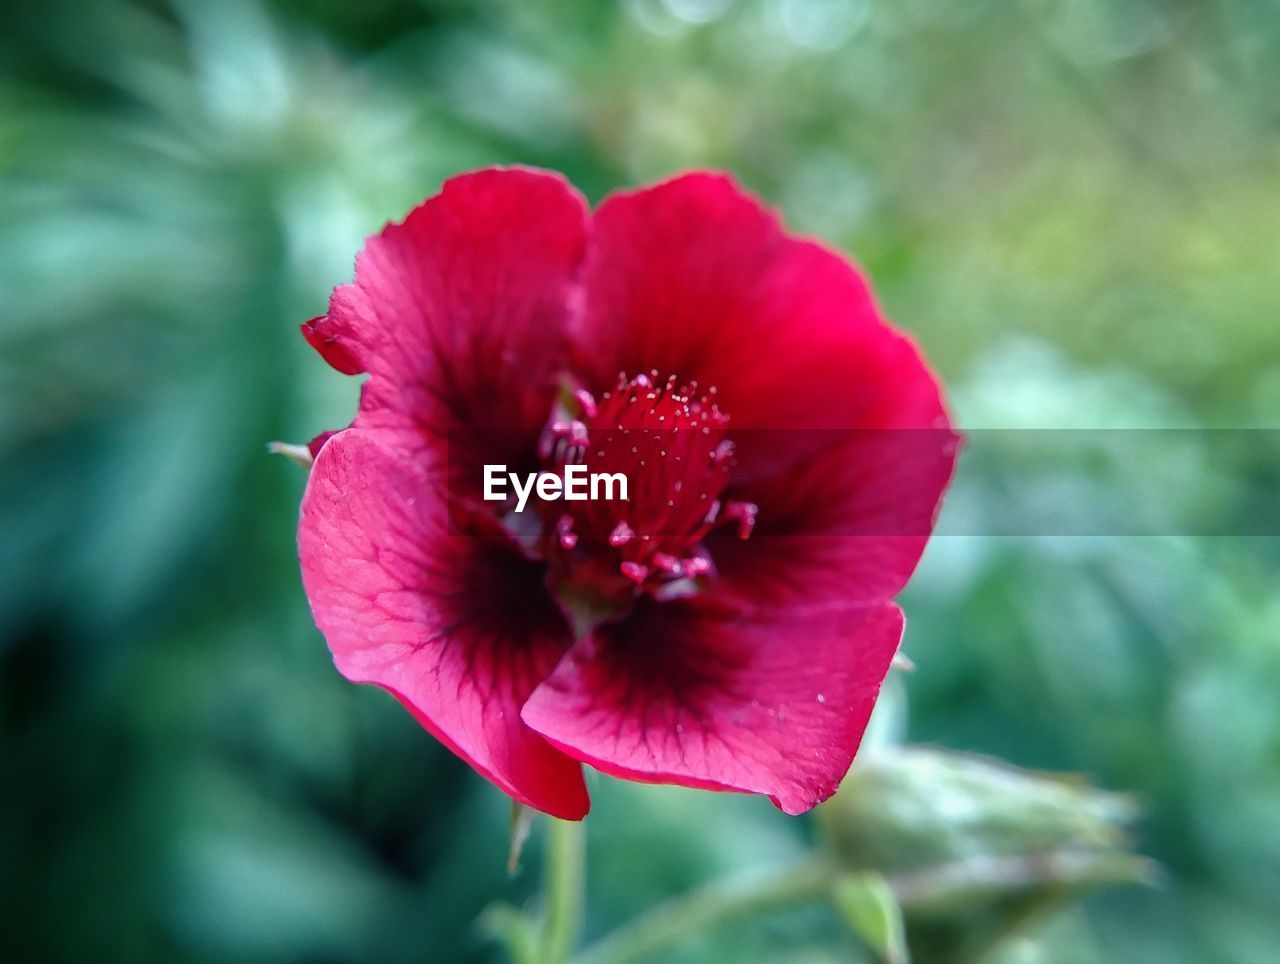 flower, nature, beauty in nature, petal, red, fragility, no people, day, outdoors, plant, growth, flower head, focus on foreground, close-up, blooming, freshness